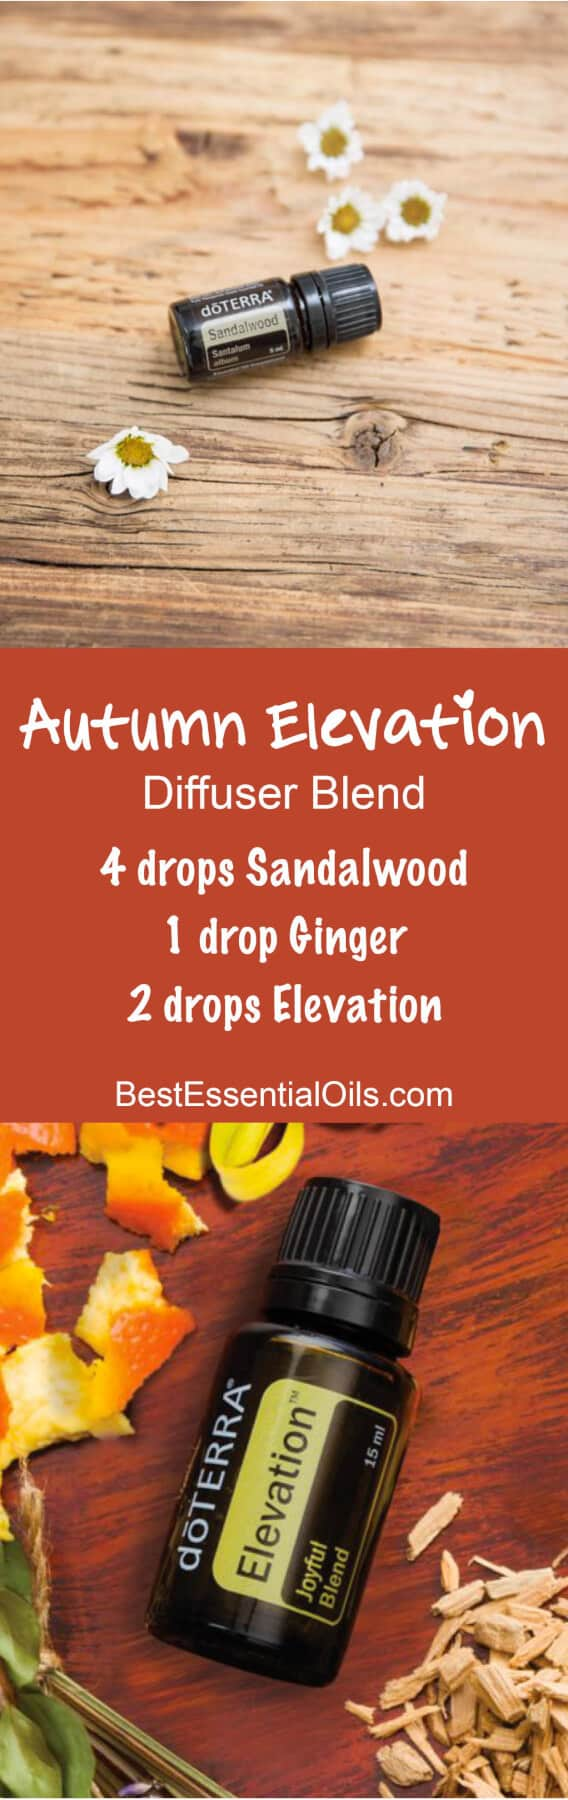 Autumn Elevation doTERRA Diffuser Blend